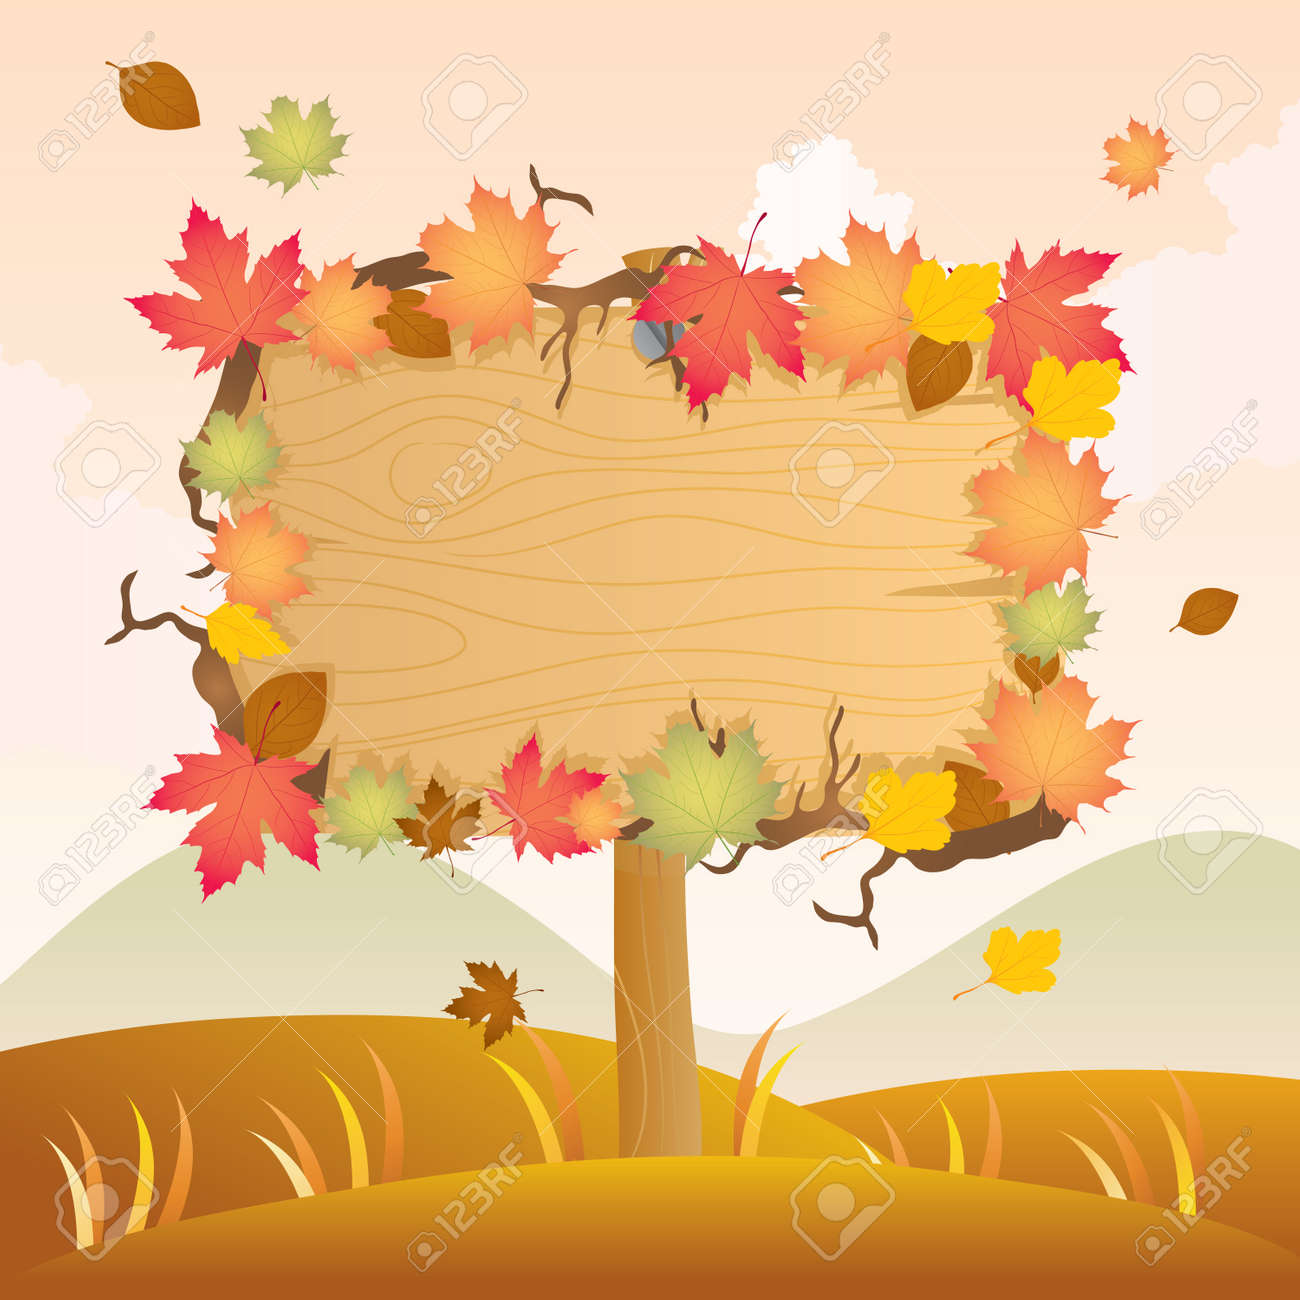 Autumn Wood Signage Stock Vector - 11068284